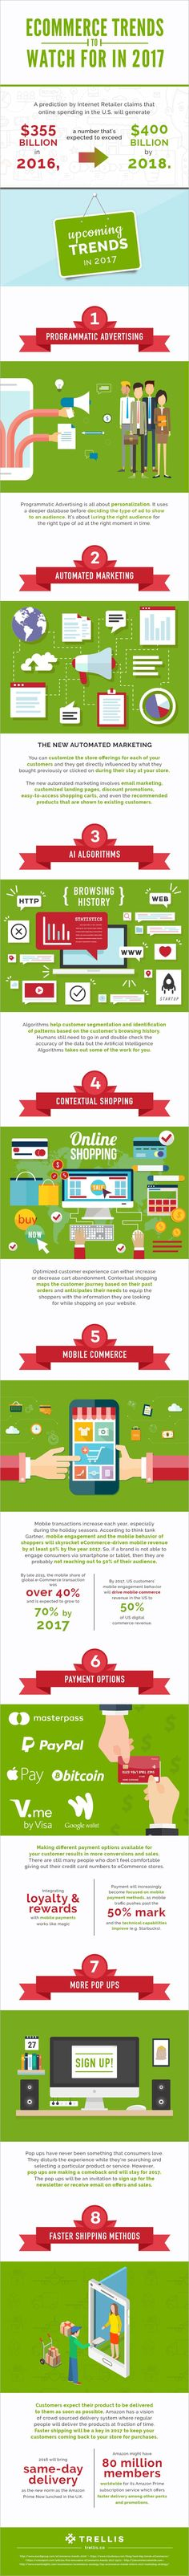 Ecommerce Trends to Watch for in 2017 #Infographic #Ecommerce #Marketing